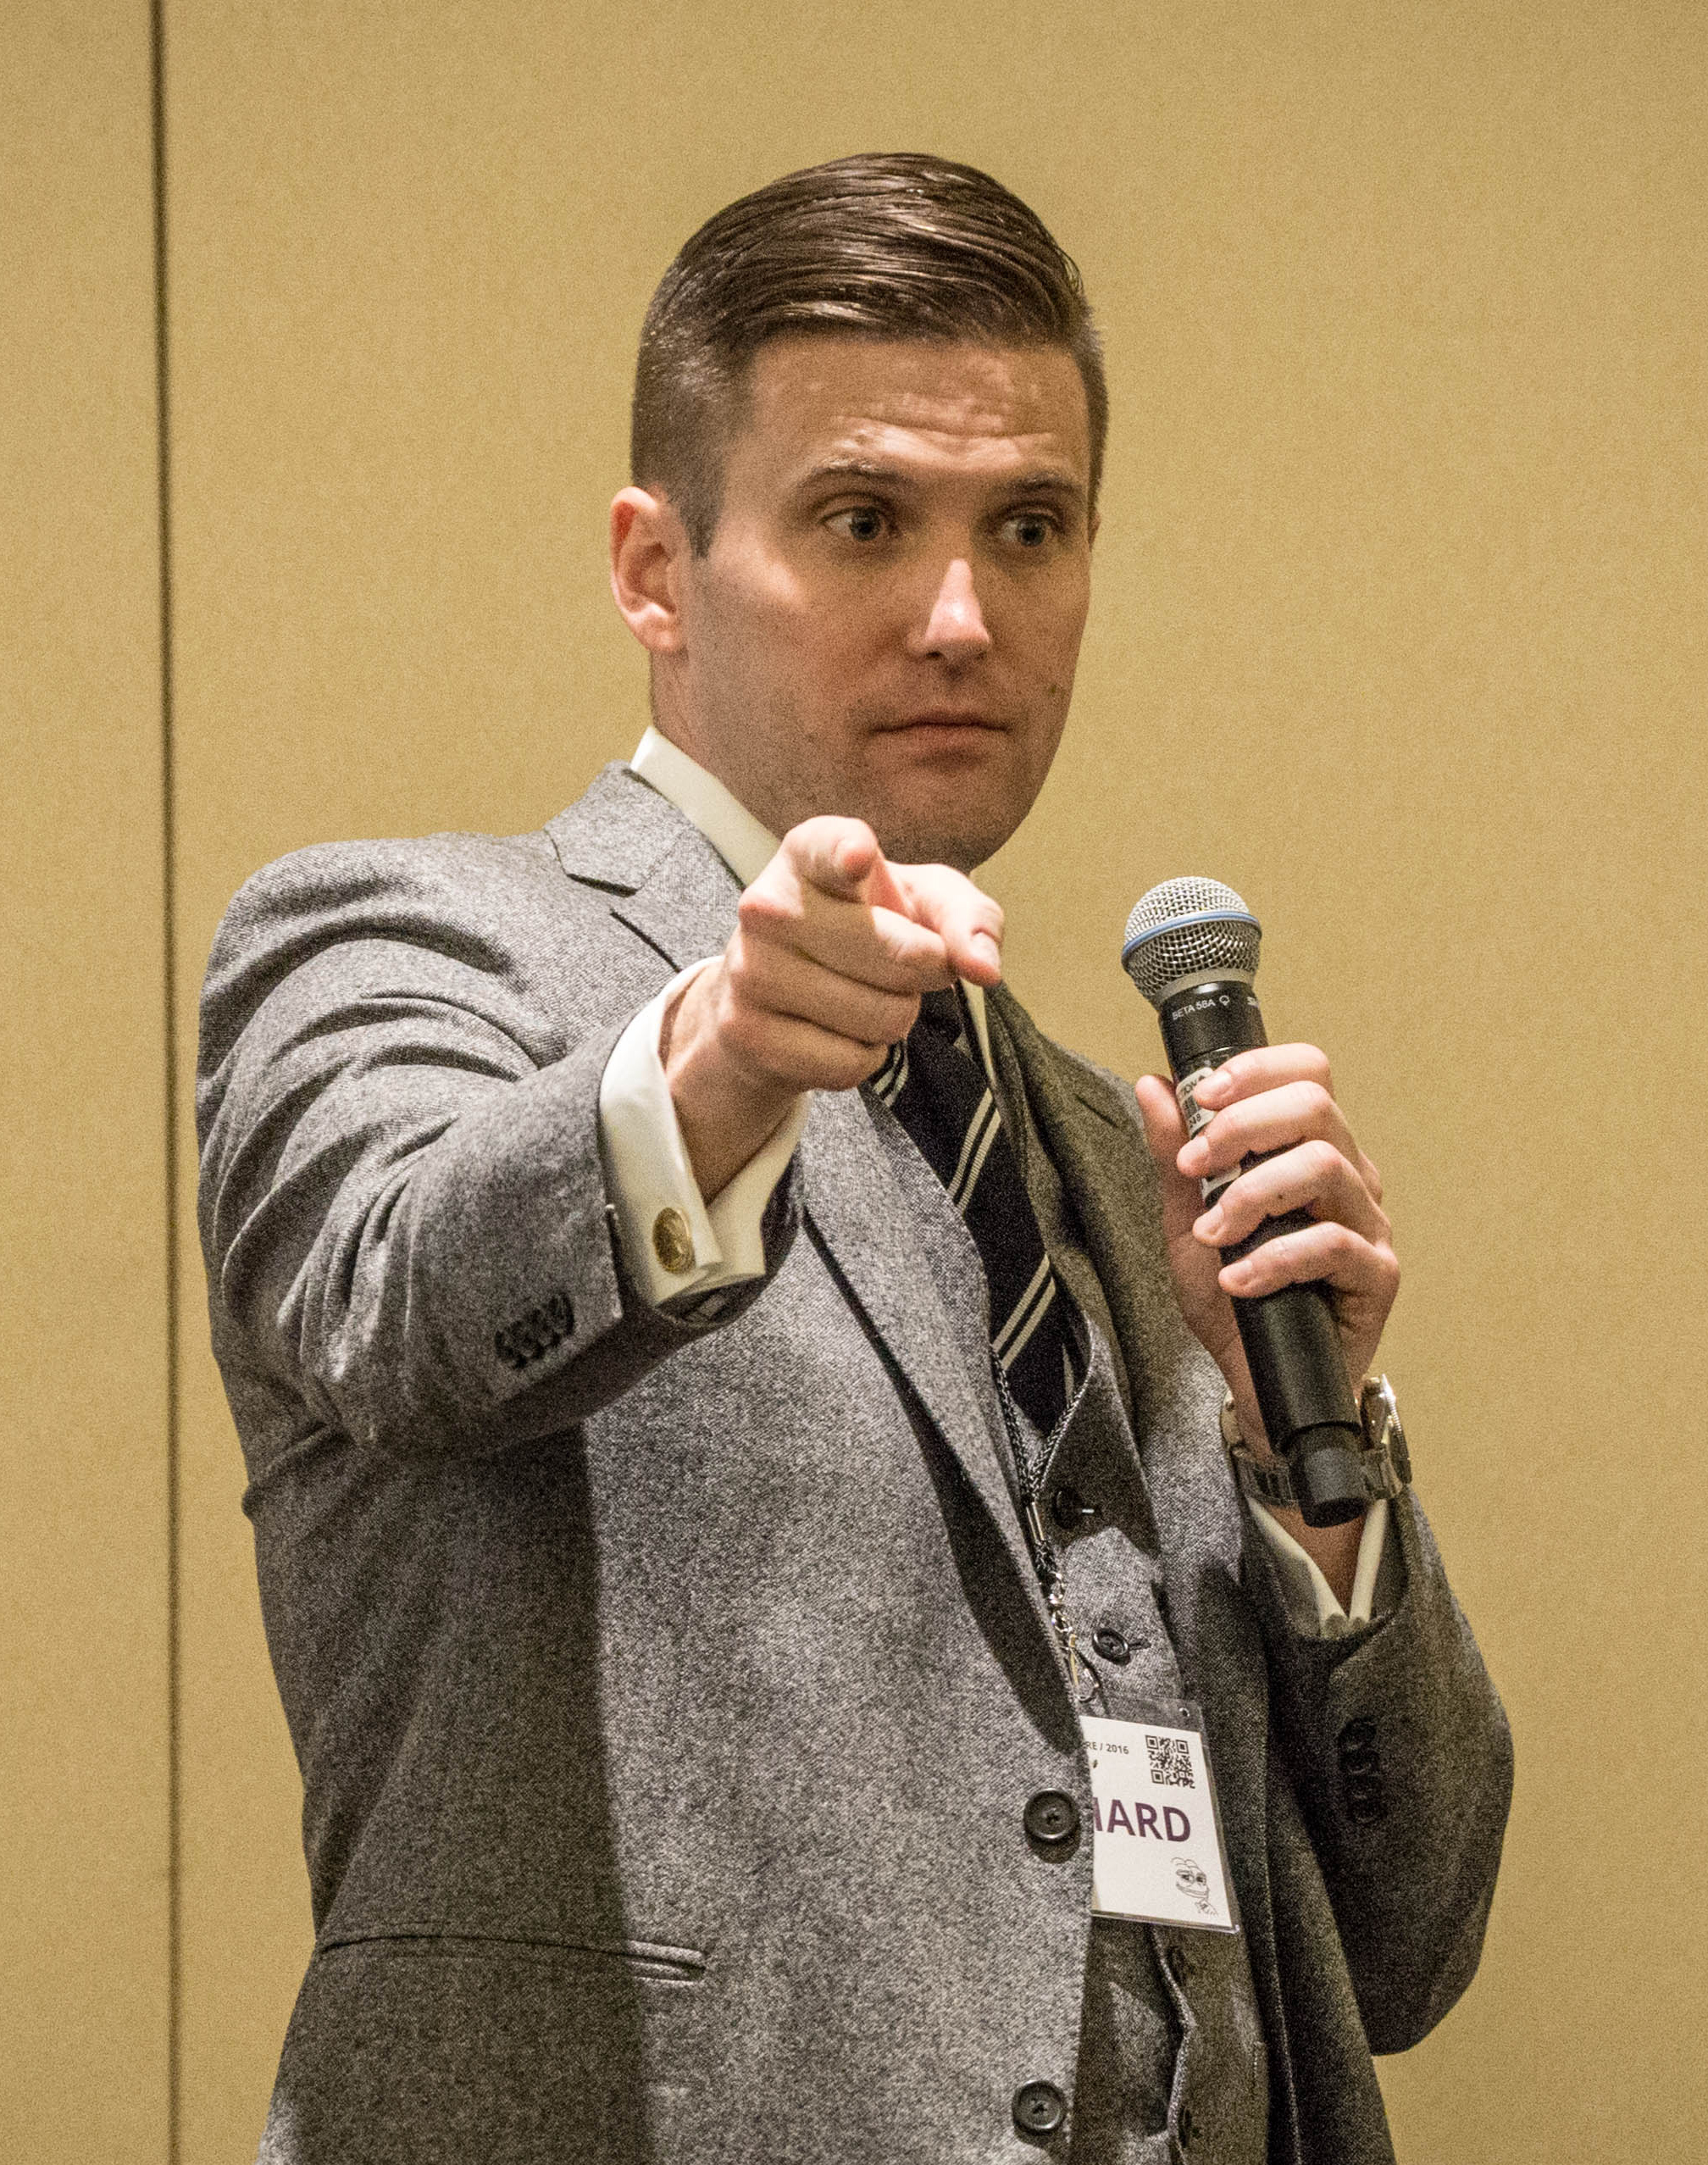 Richard Spencer By Vas Panagiotopoulos (https://www.flickr.com/photos/vas/30910084580/) [CC BY 2.0 (http://creativecommons.org/licenses/by/2.0)], via Wikimedia Commons